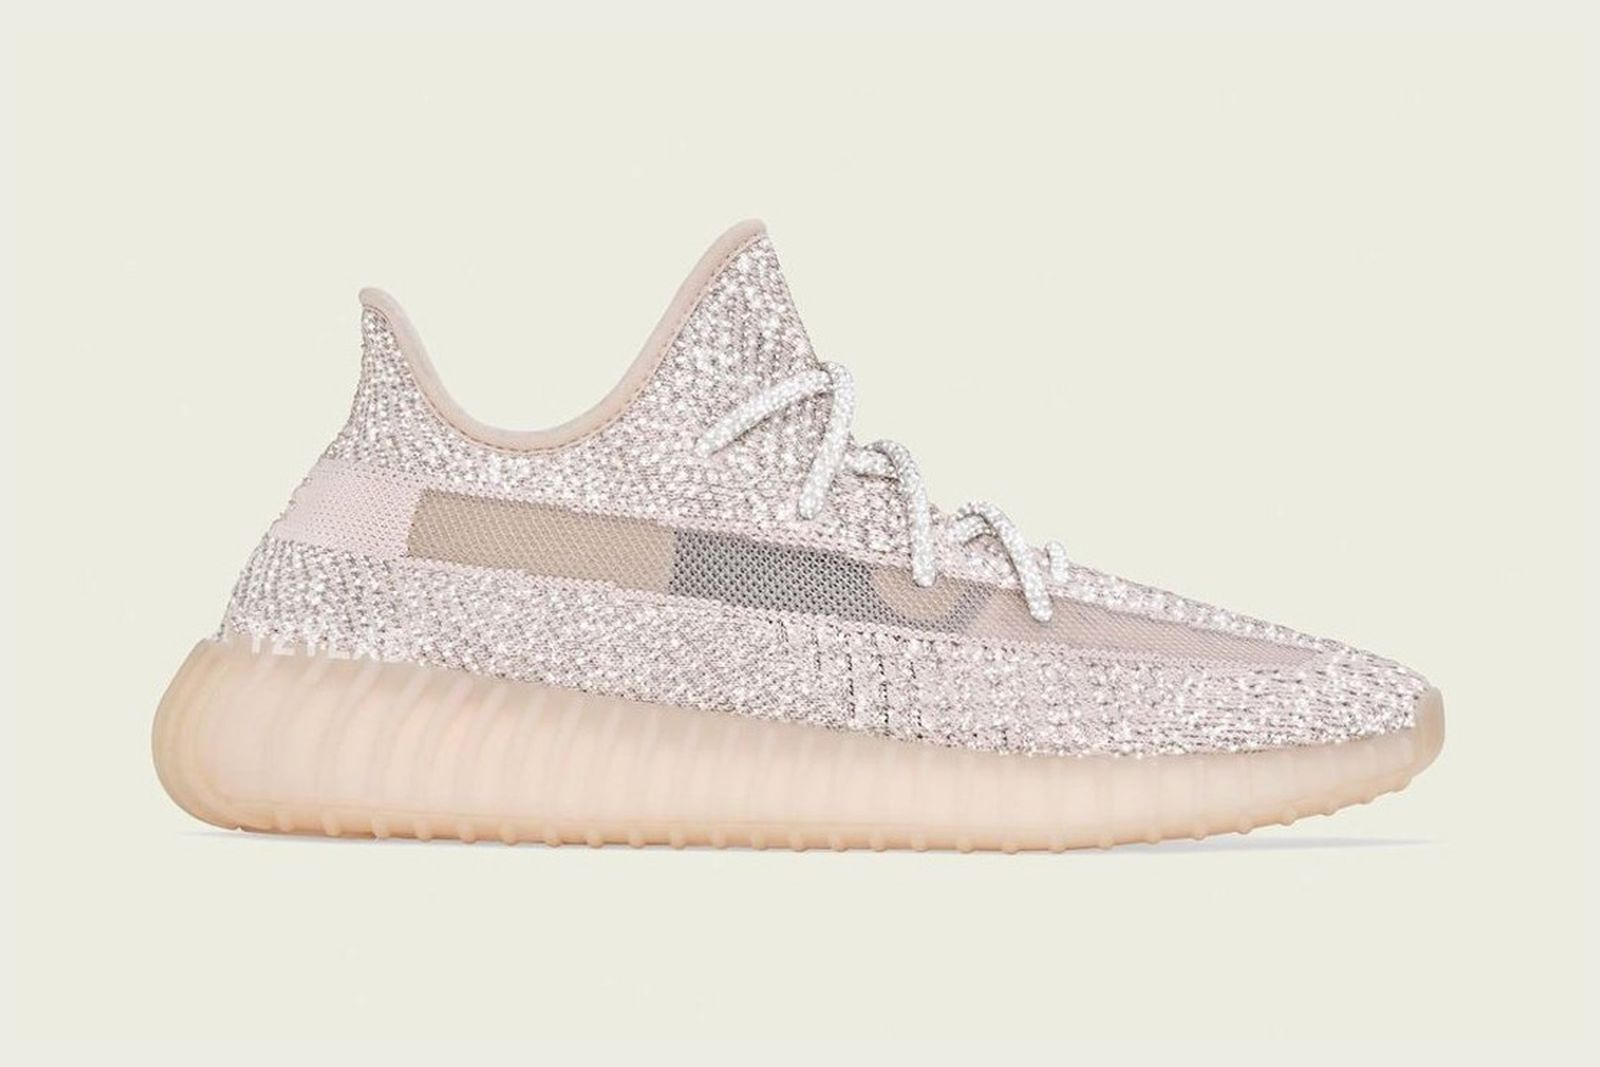 yeezy shoes guide 350 v2 synth reflective Grailed StockX adidas Originals